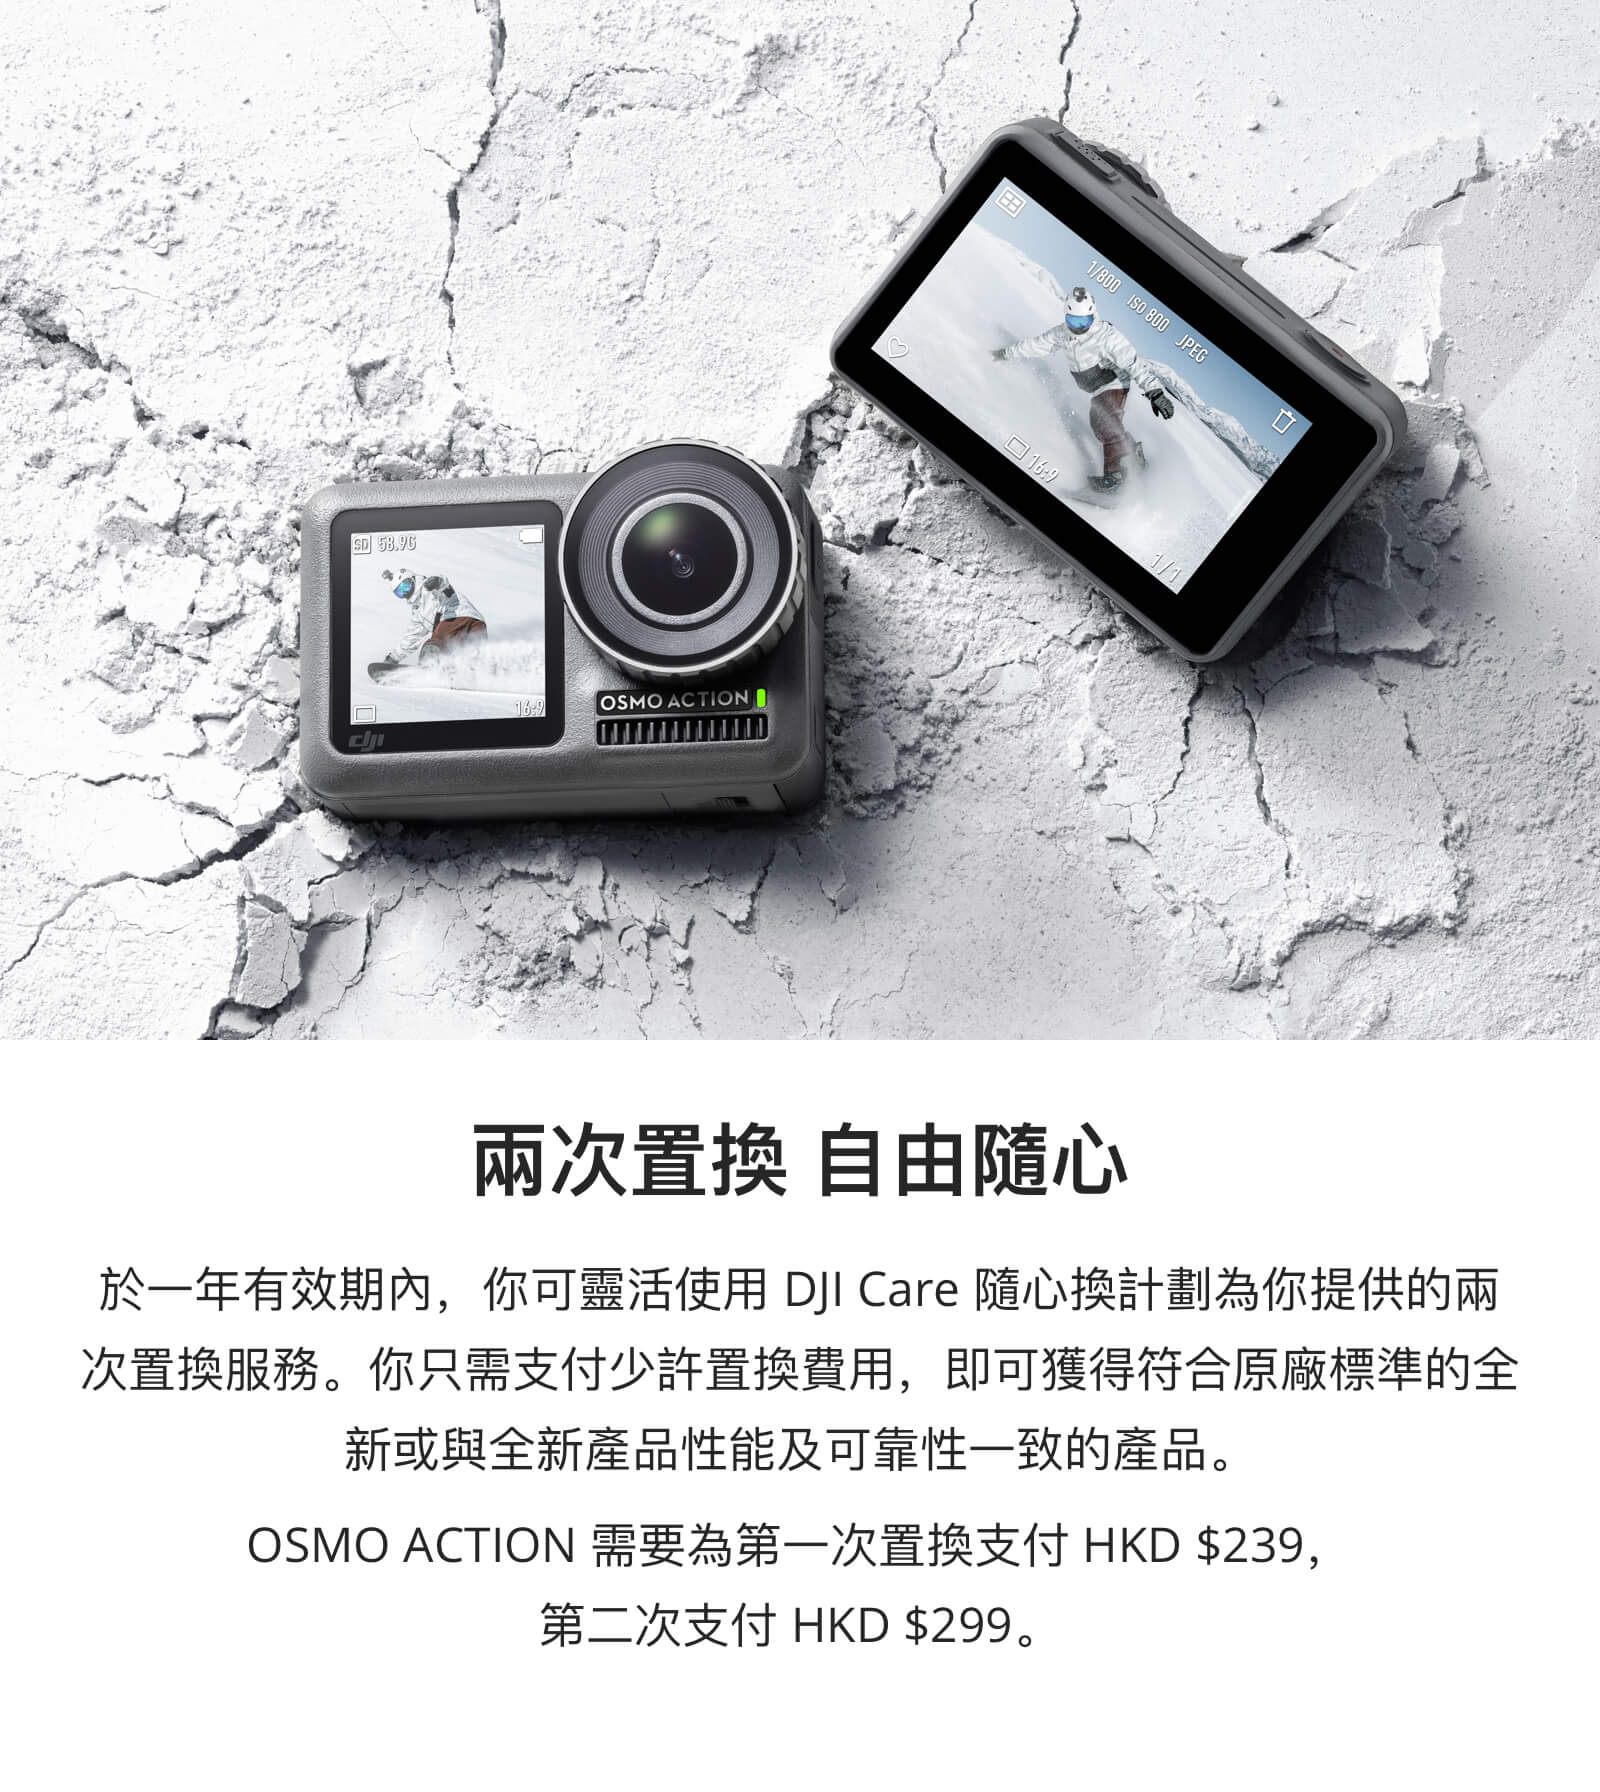 2osmo-action-cr.jpg